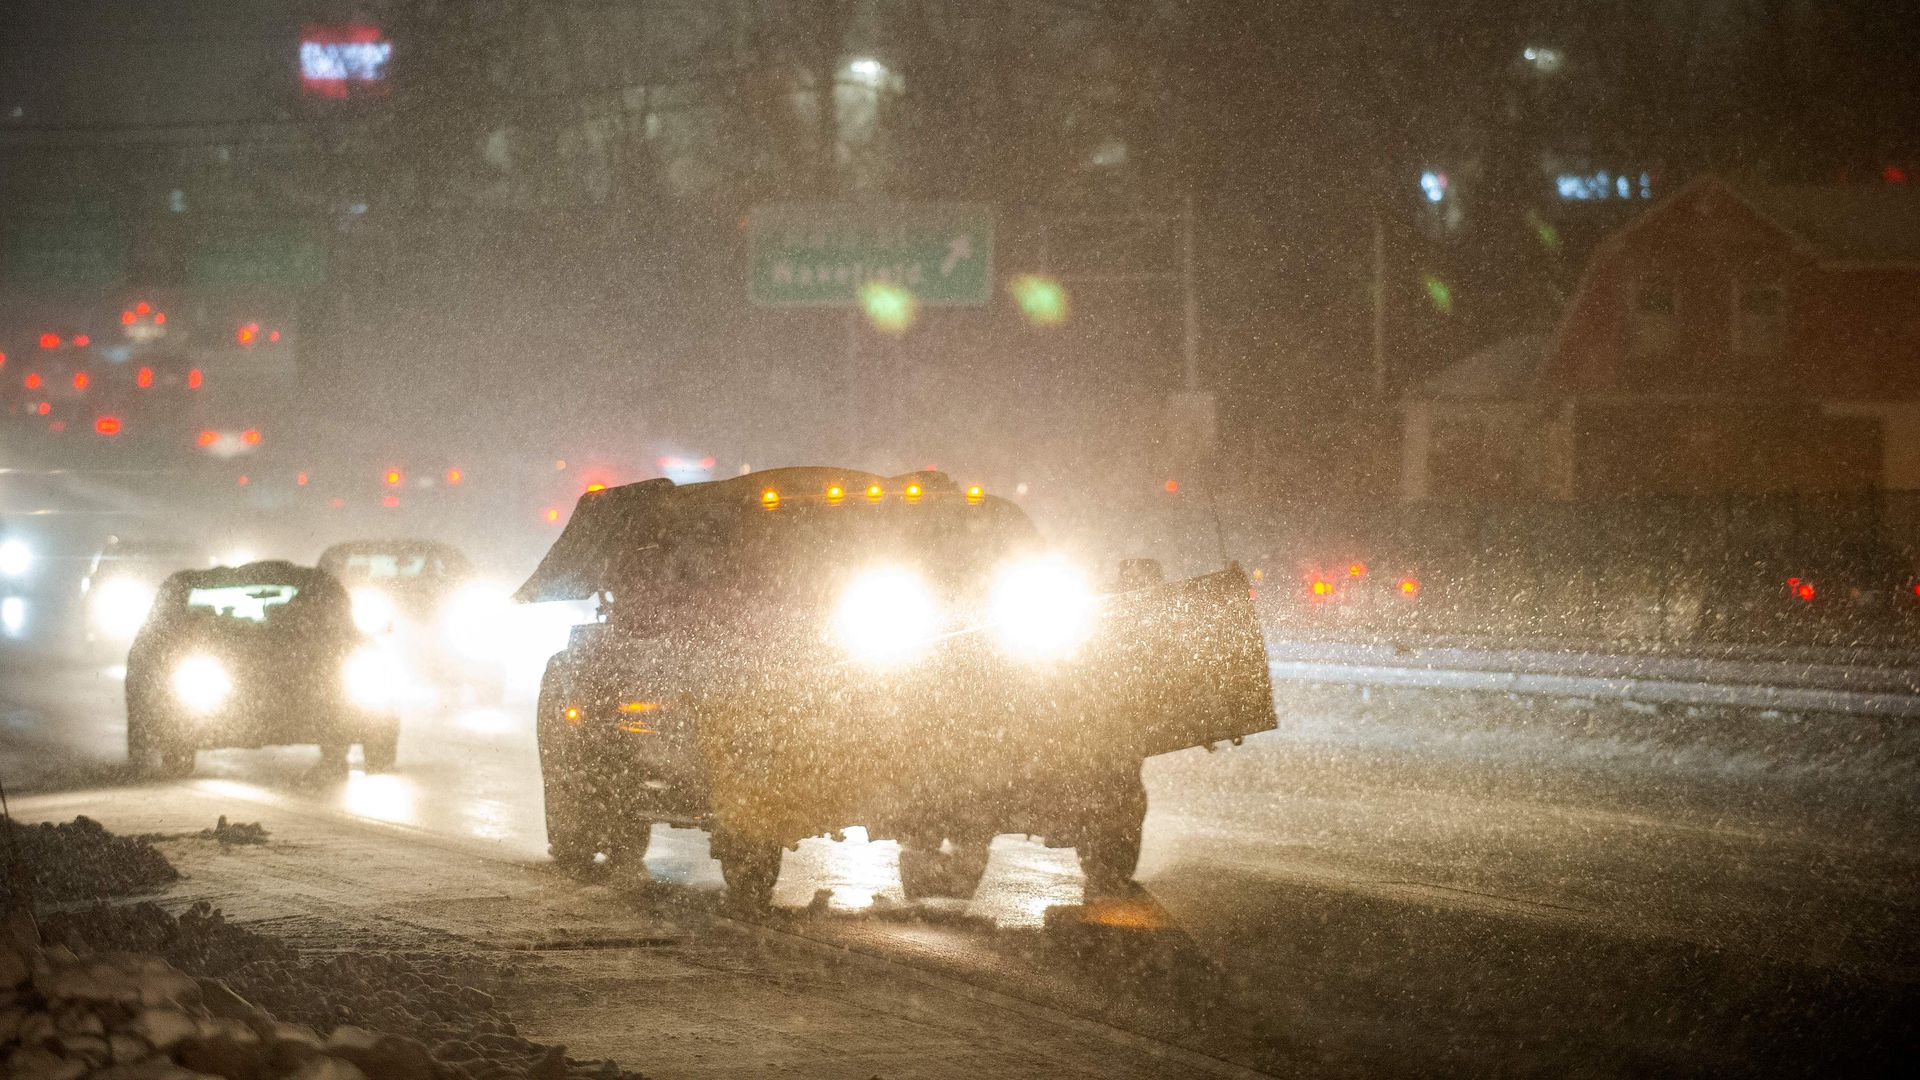 A plow makes it way down US Route 1, throwing sand, as cars are engulfed by snow in the early stages of the second part of Winter Storm Ezekiel in Saugus, Massachusetts on December 2